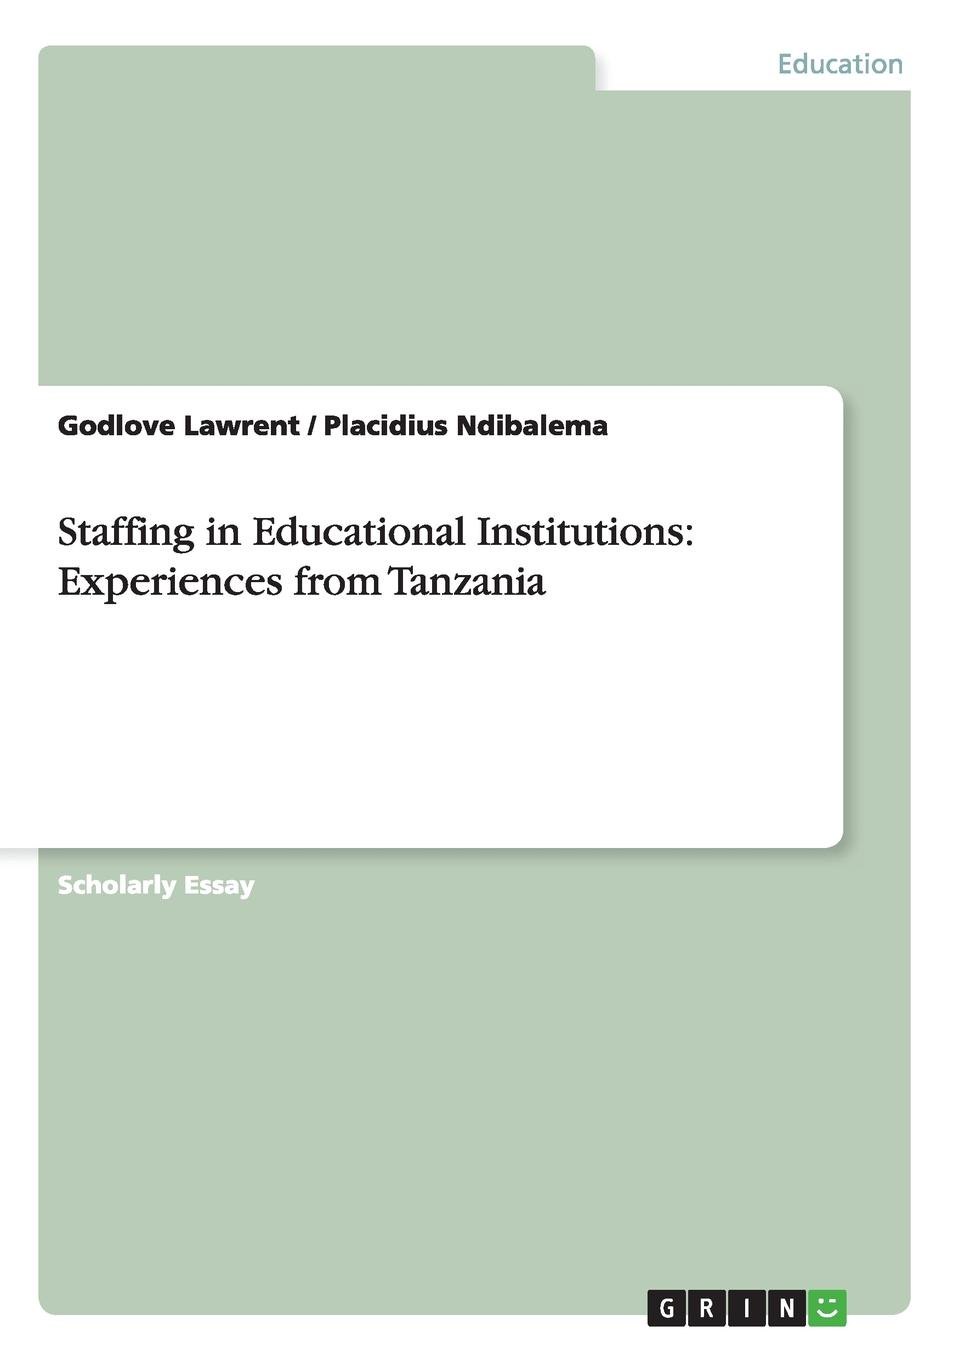 цены Godlove Lawrent, Placidius Ndibalema Staffing in Educational Institutions. Experiences from Tanzania